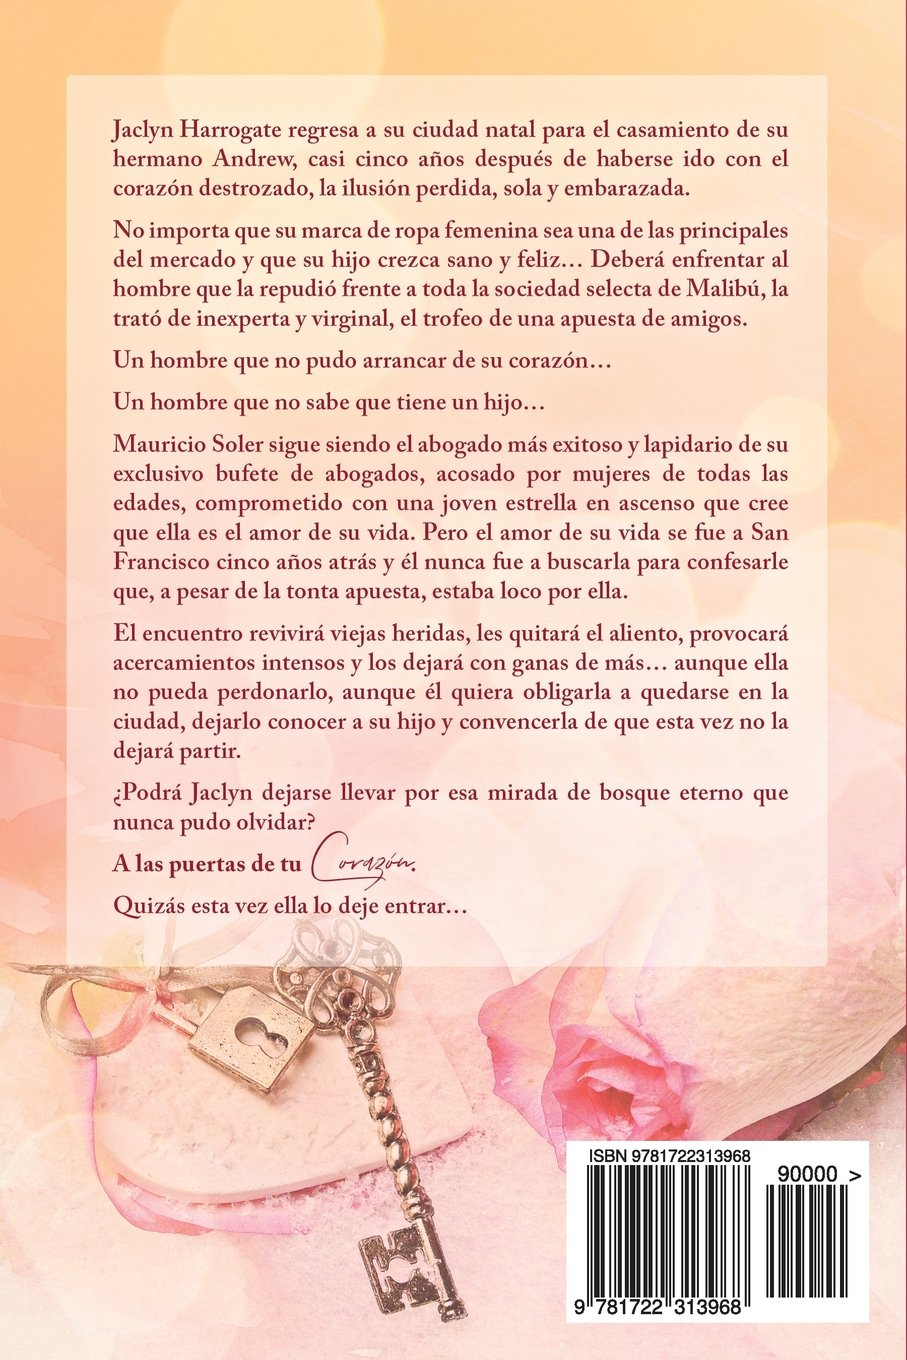 Amazon.com: A las puertas de tu corazon (Spanish Edition) (9781722313968): Laura Kaestner: Books